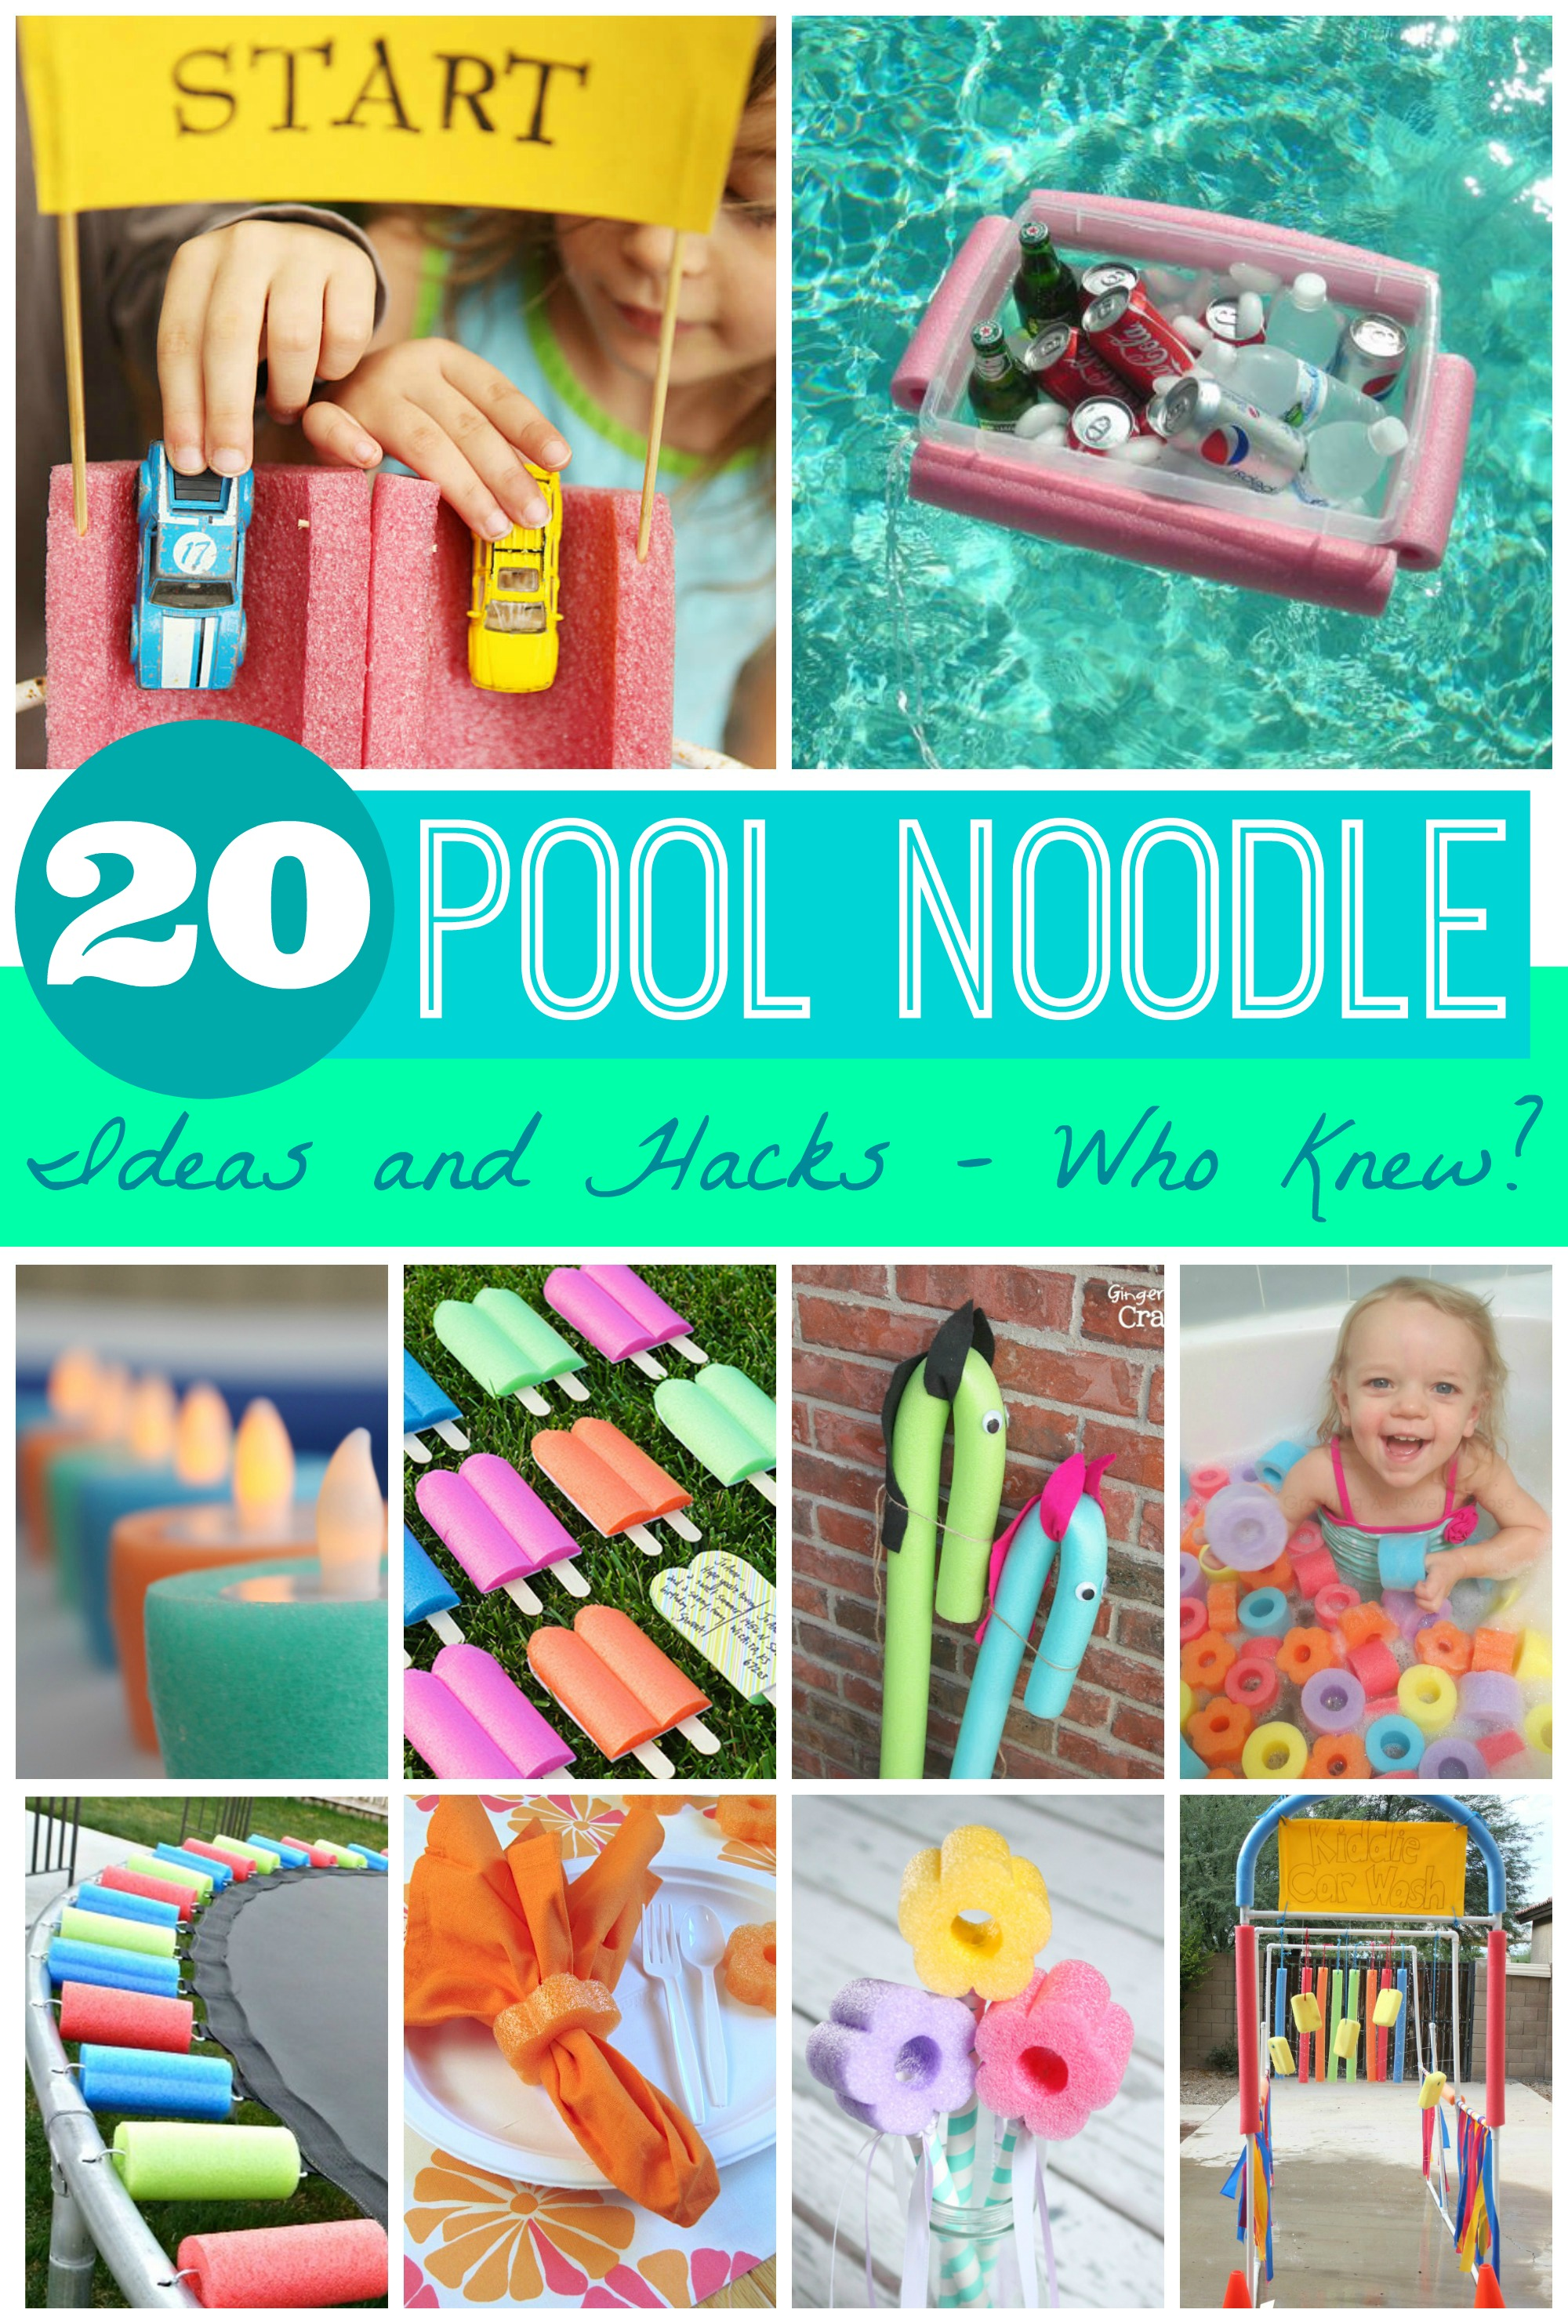 20-pool-noodle-ideas-and-hacks-frugal-coupon-living